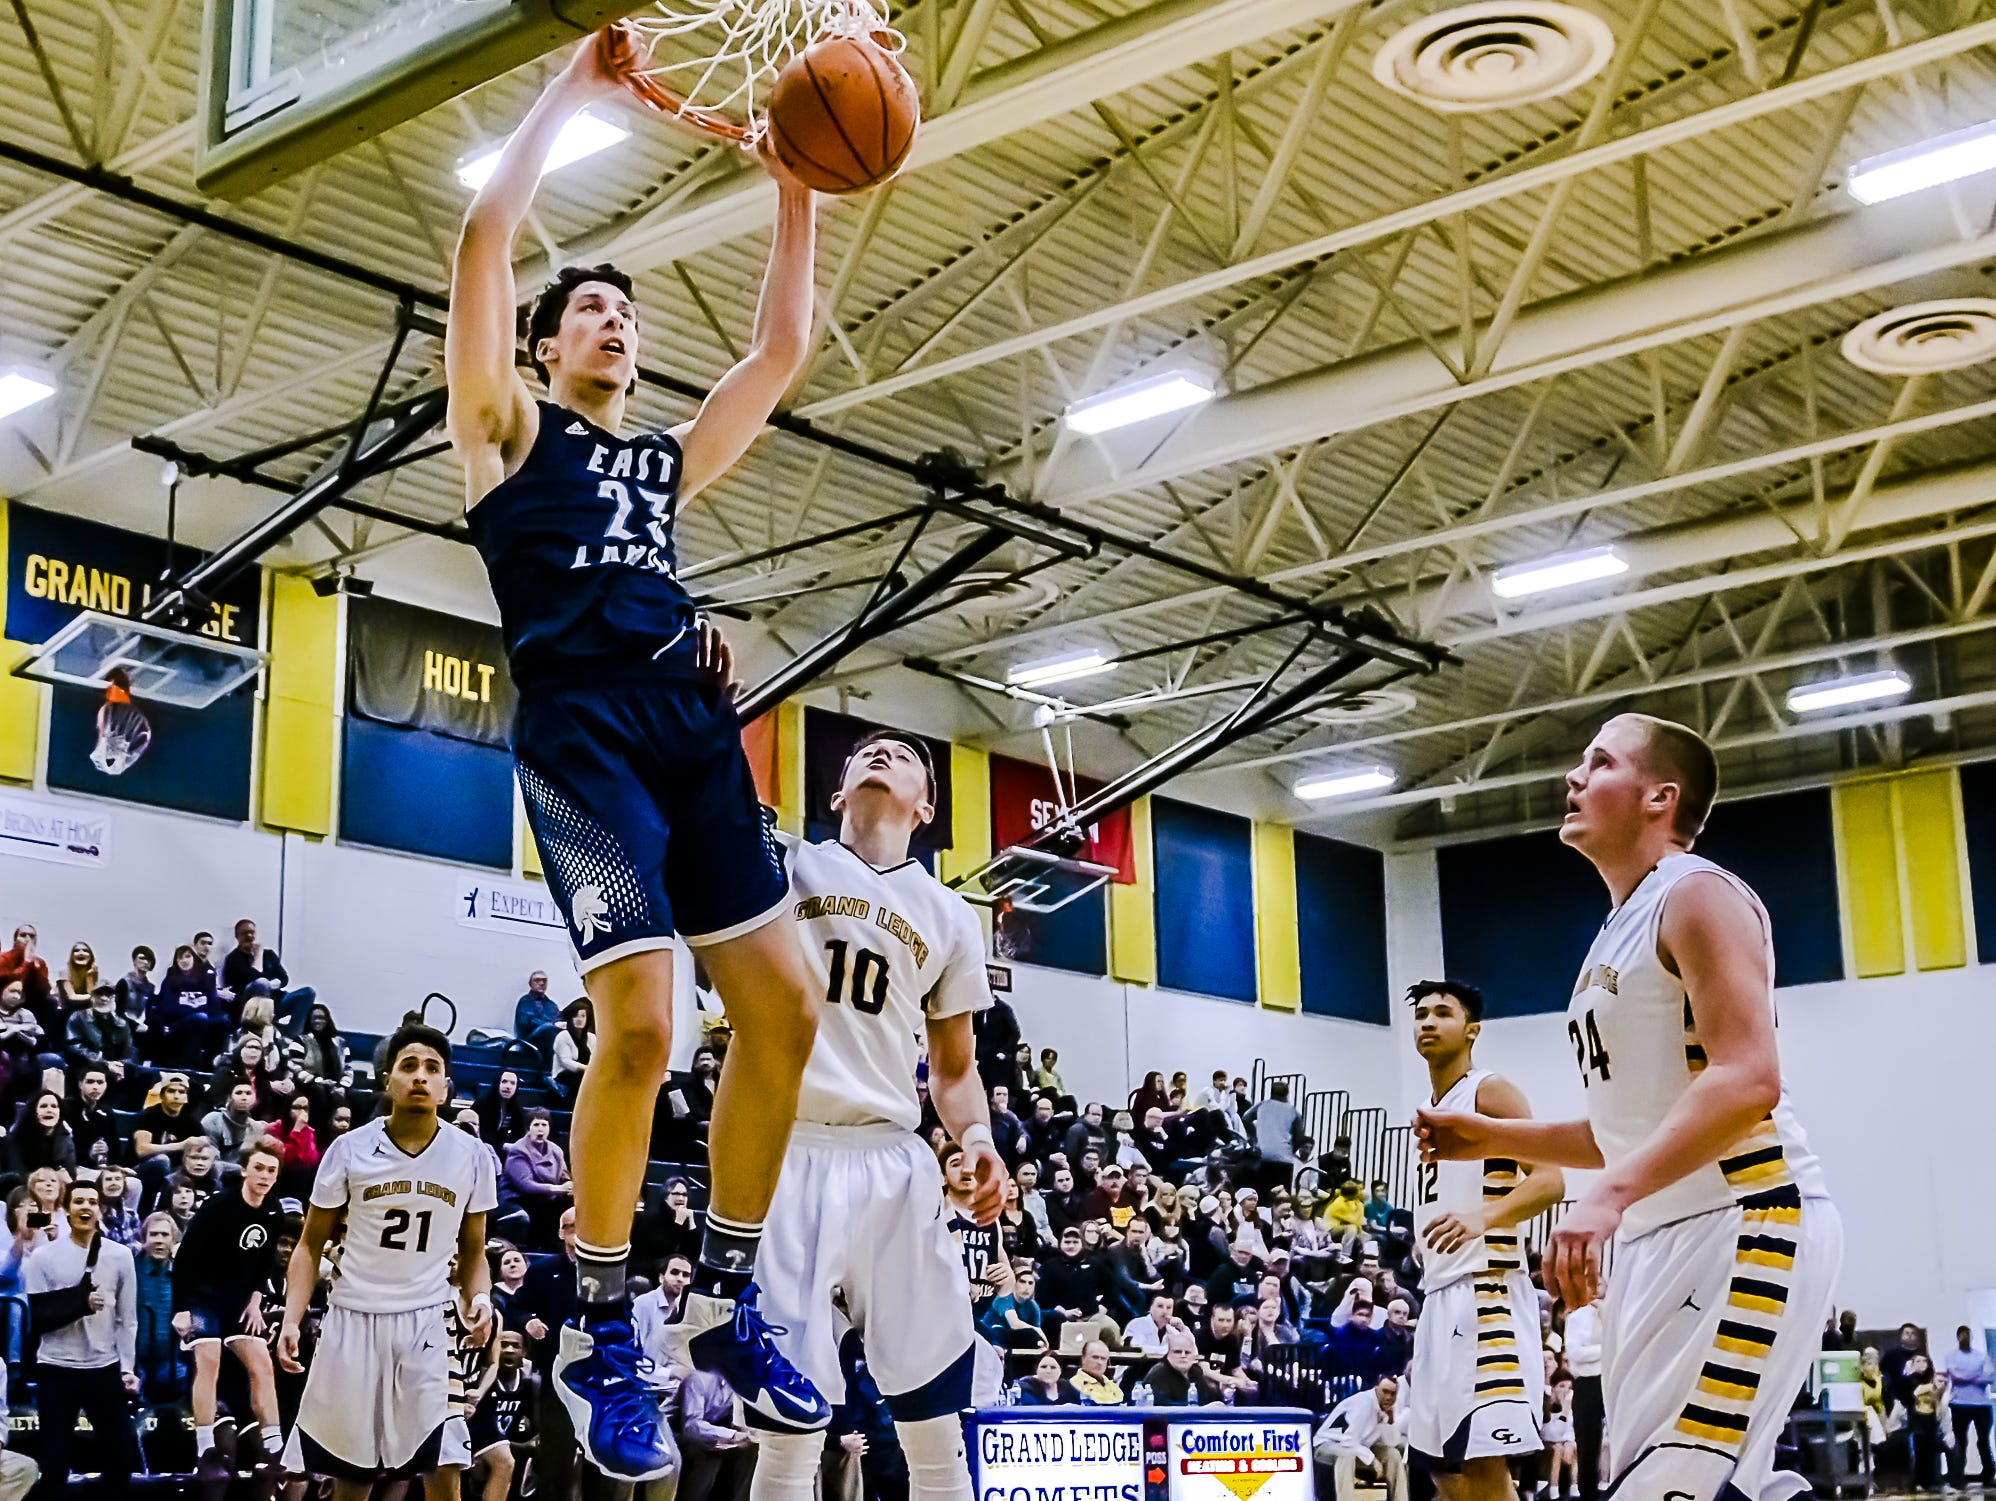 Brandon Johns, who is bucking the trend of the state's top players leaving for prep schools, is a top reason why East Lansing is a Class A state title contender.